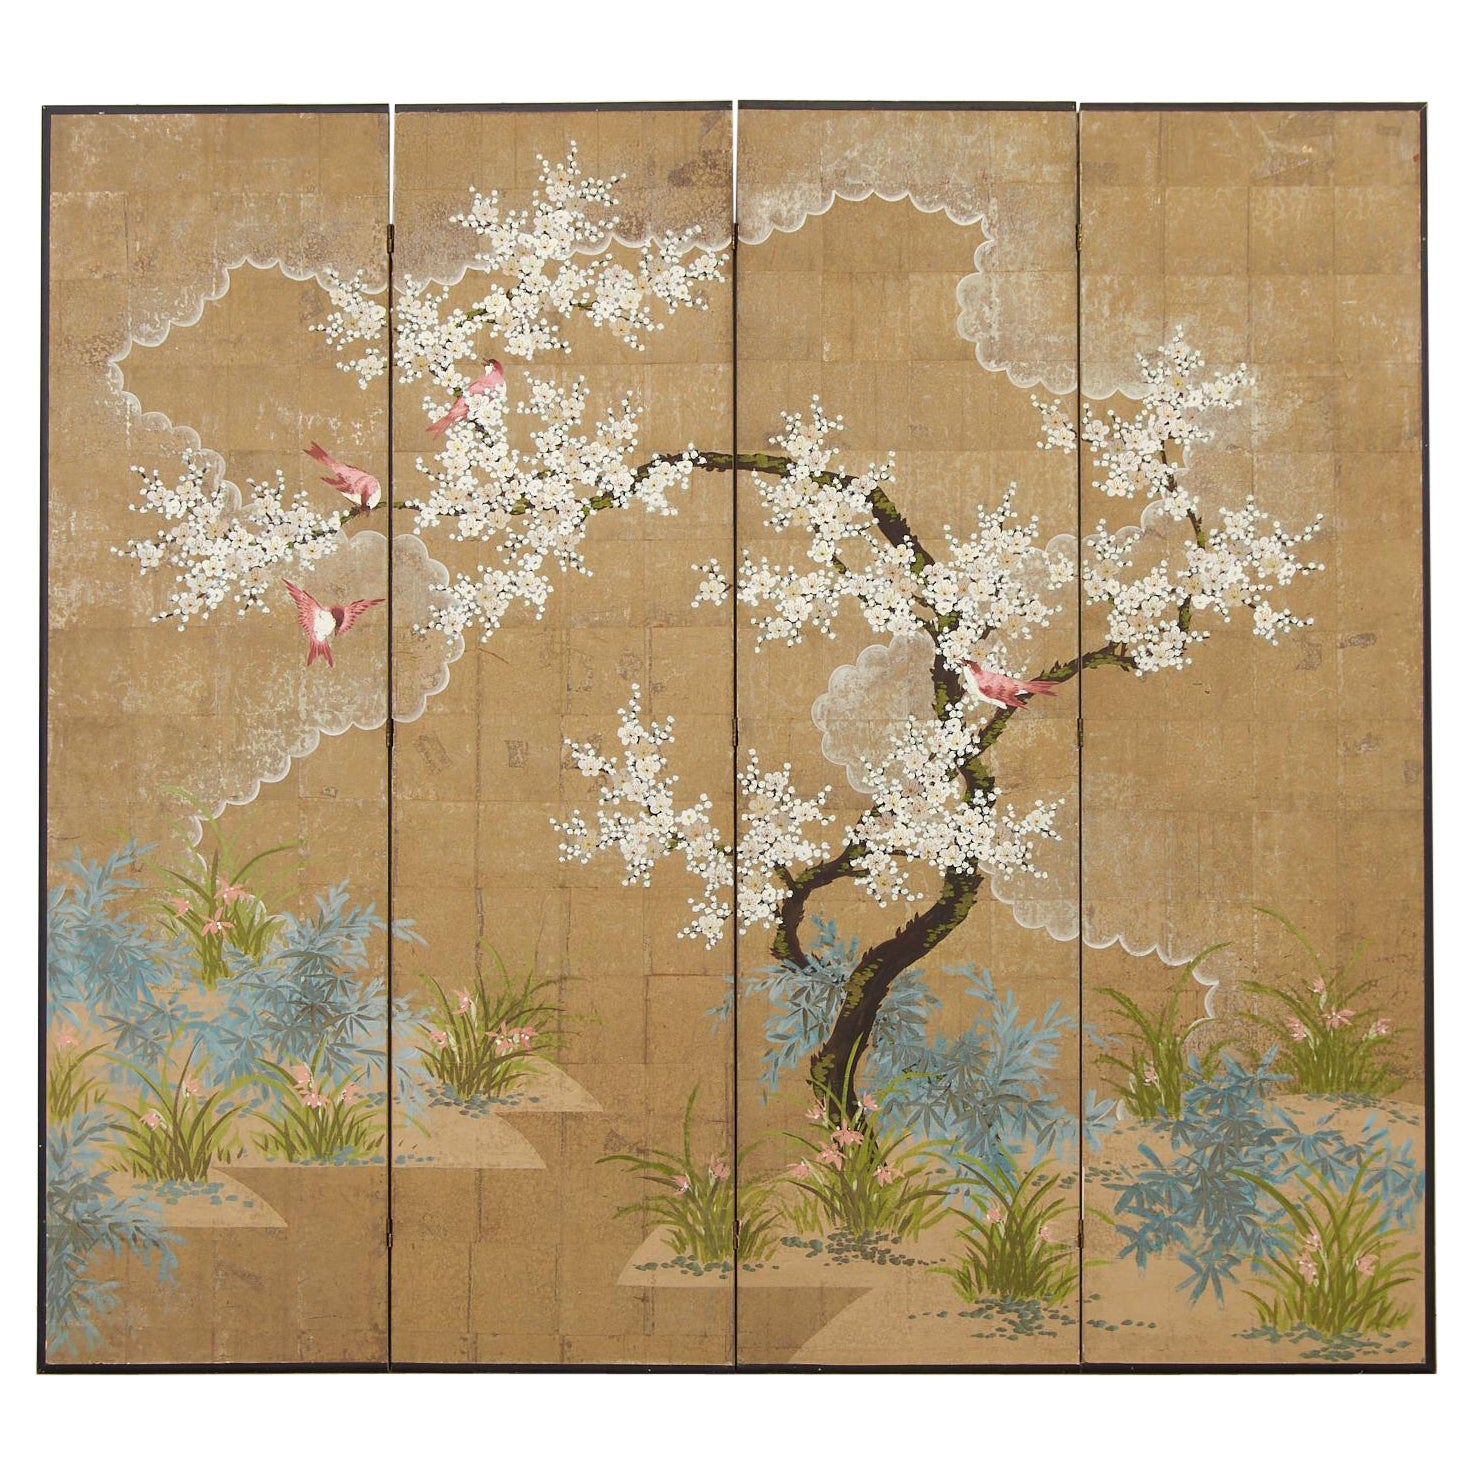 Robert Crowder Chinoiserie Four Panel Screen Flora and Fauna